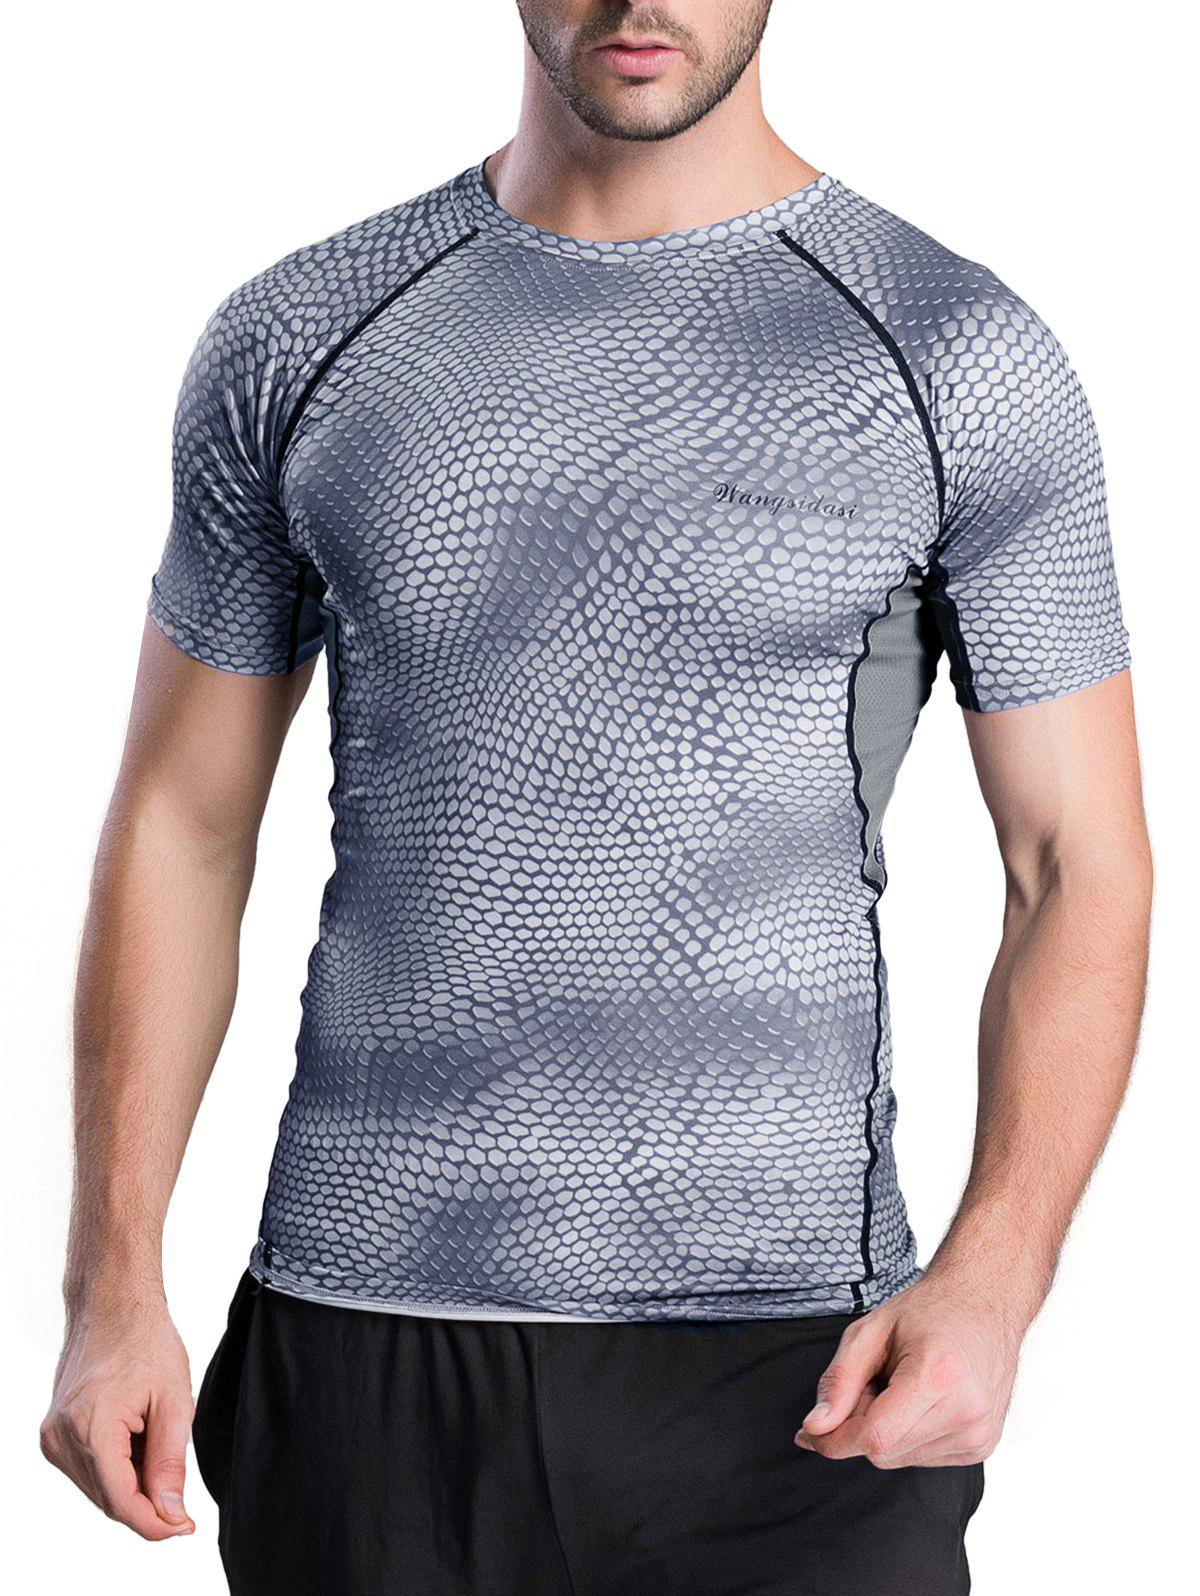 Snakeskin Pattern Short Sleeve Round Neck Quick-Dry T-Shirt - GRAY S